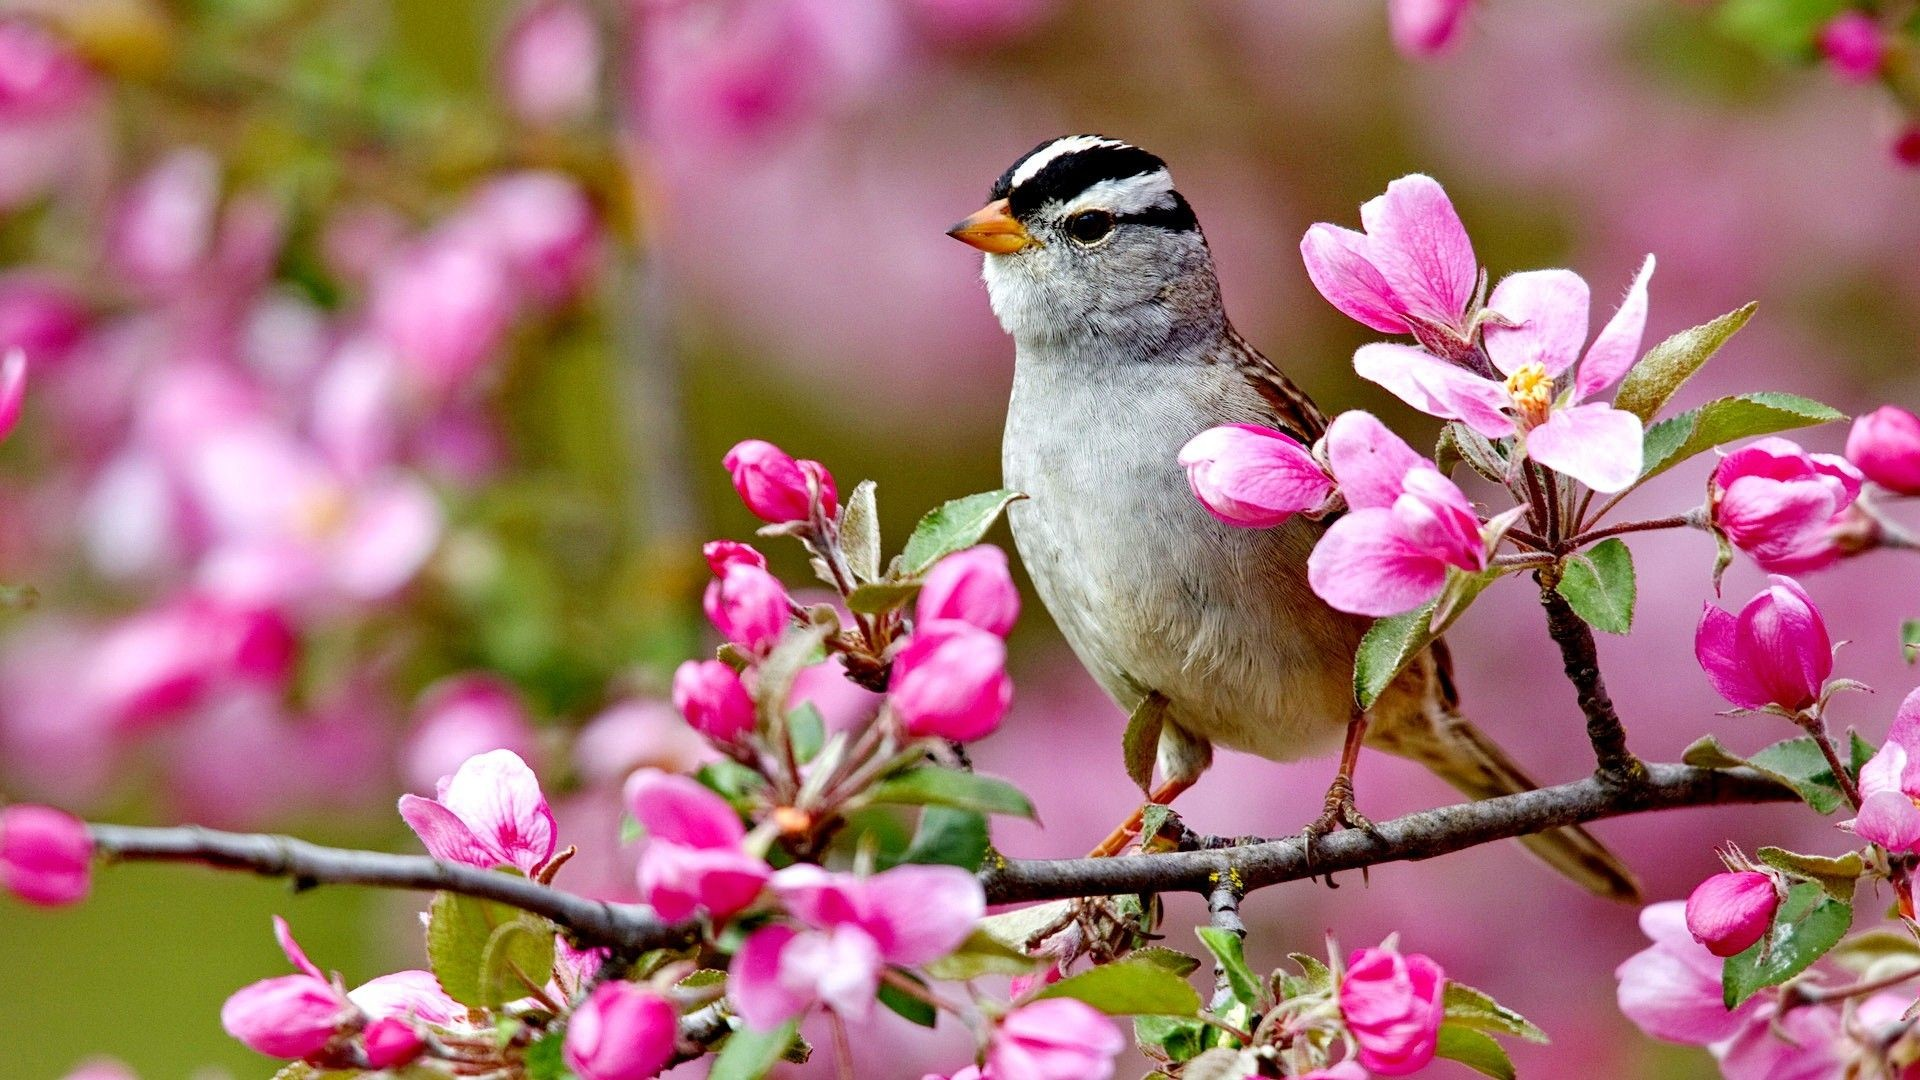 1920x1080 Flowers: Bird Spring Flowers Colorful Forces Nature Colors Birds Splendor  Pink Tree Buds Landscpae Lovely Paradise Blossoms Best Wallpapers for High  ...